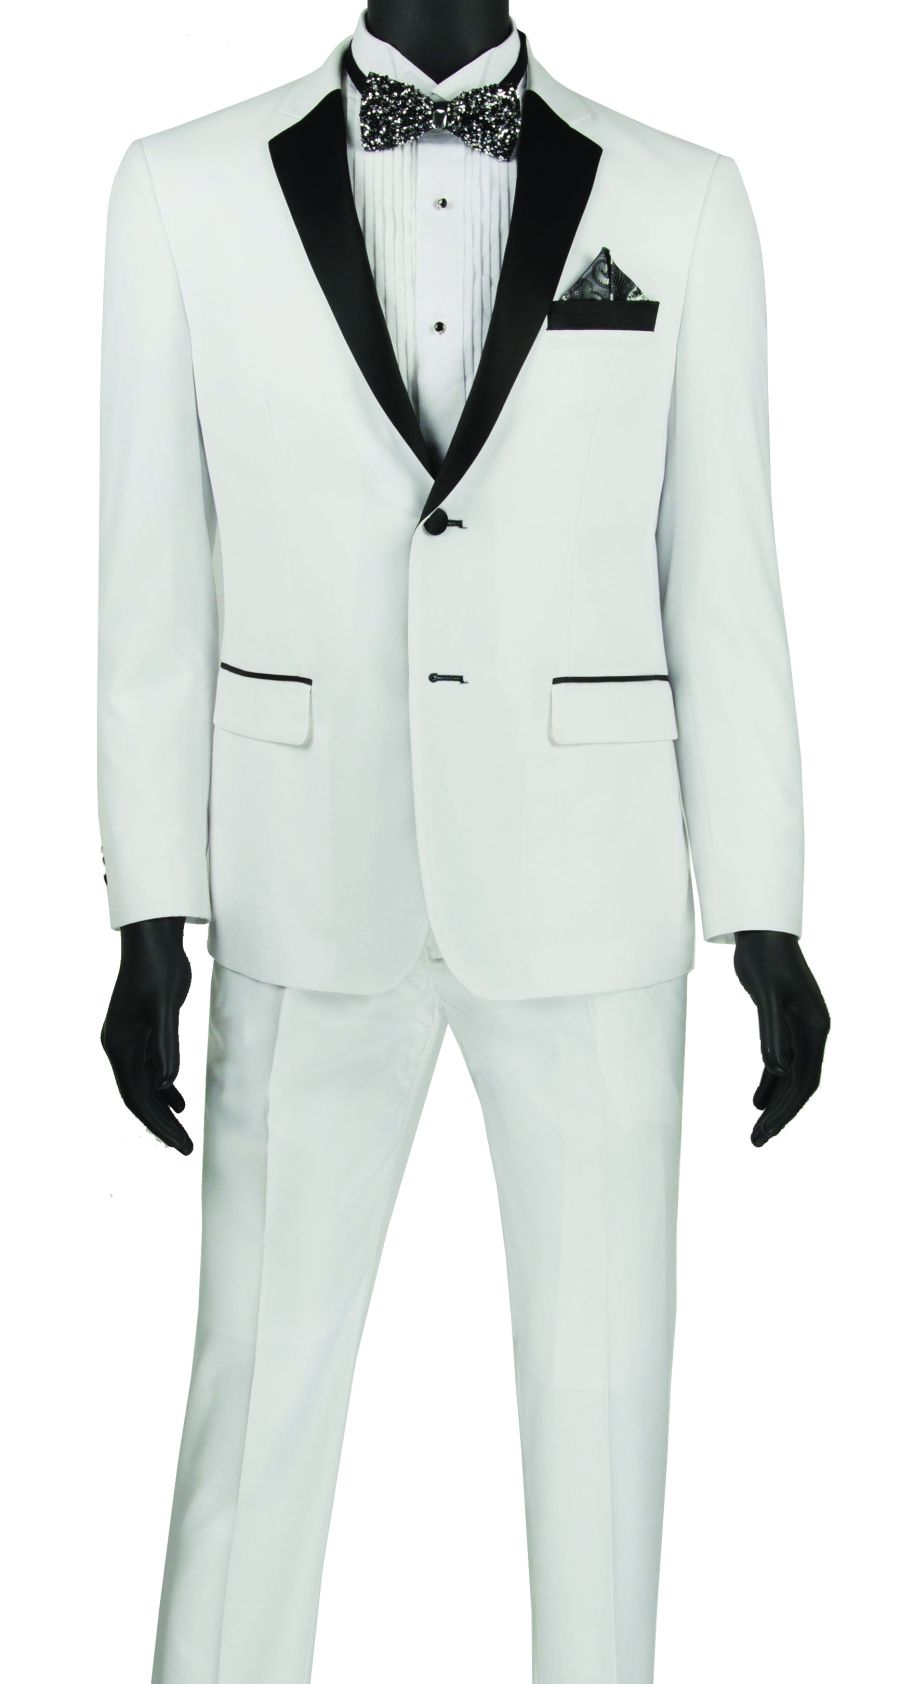 Vinci Men Tuxedo T-US900 White - Church Suits For Less